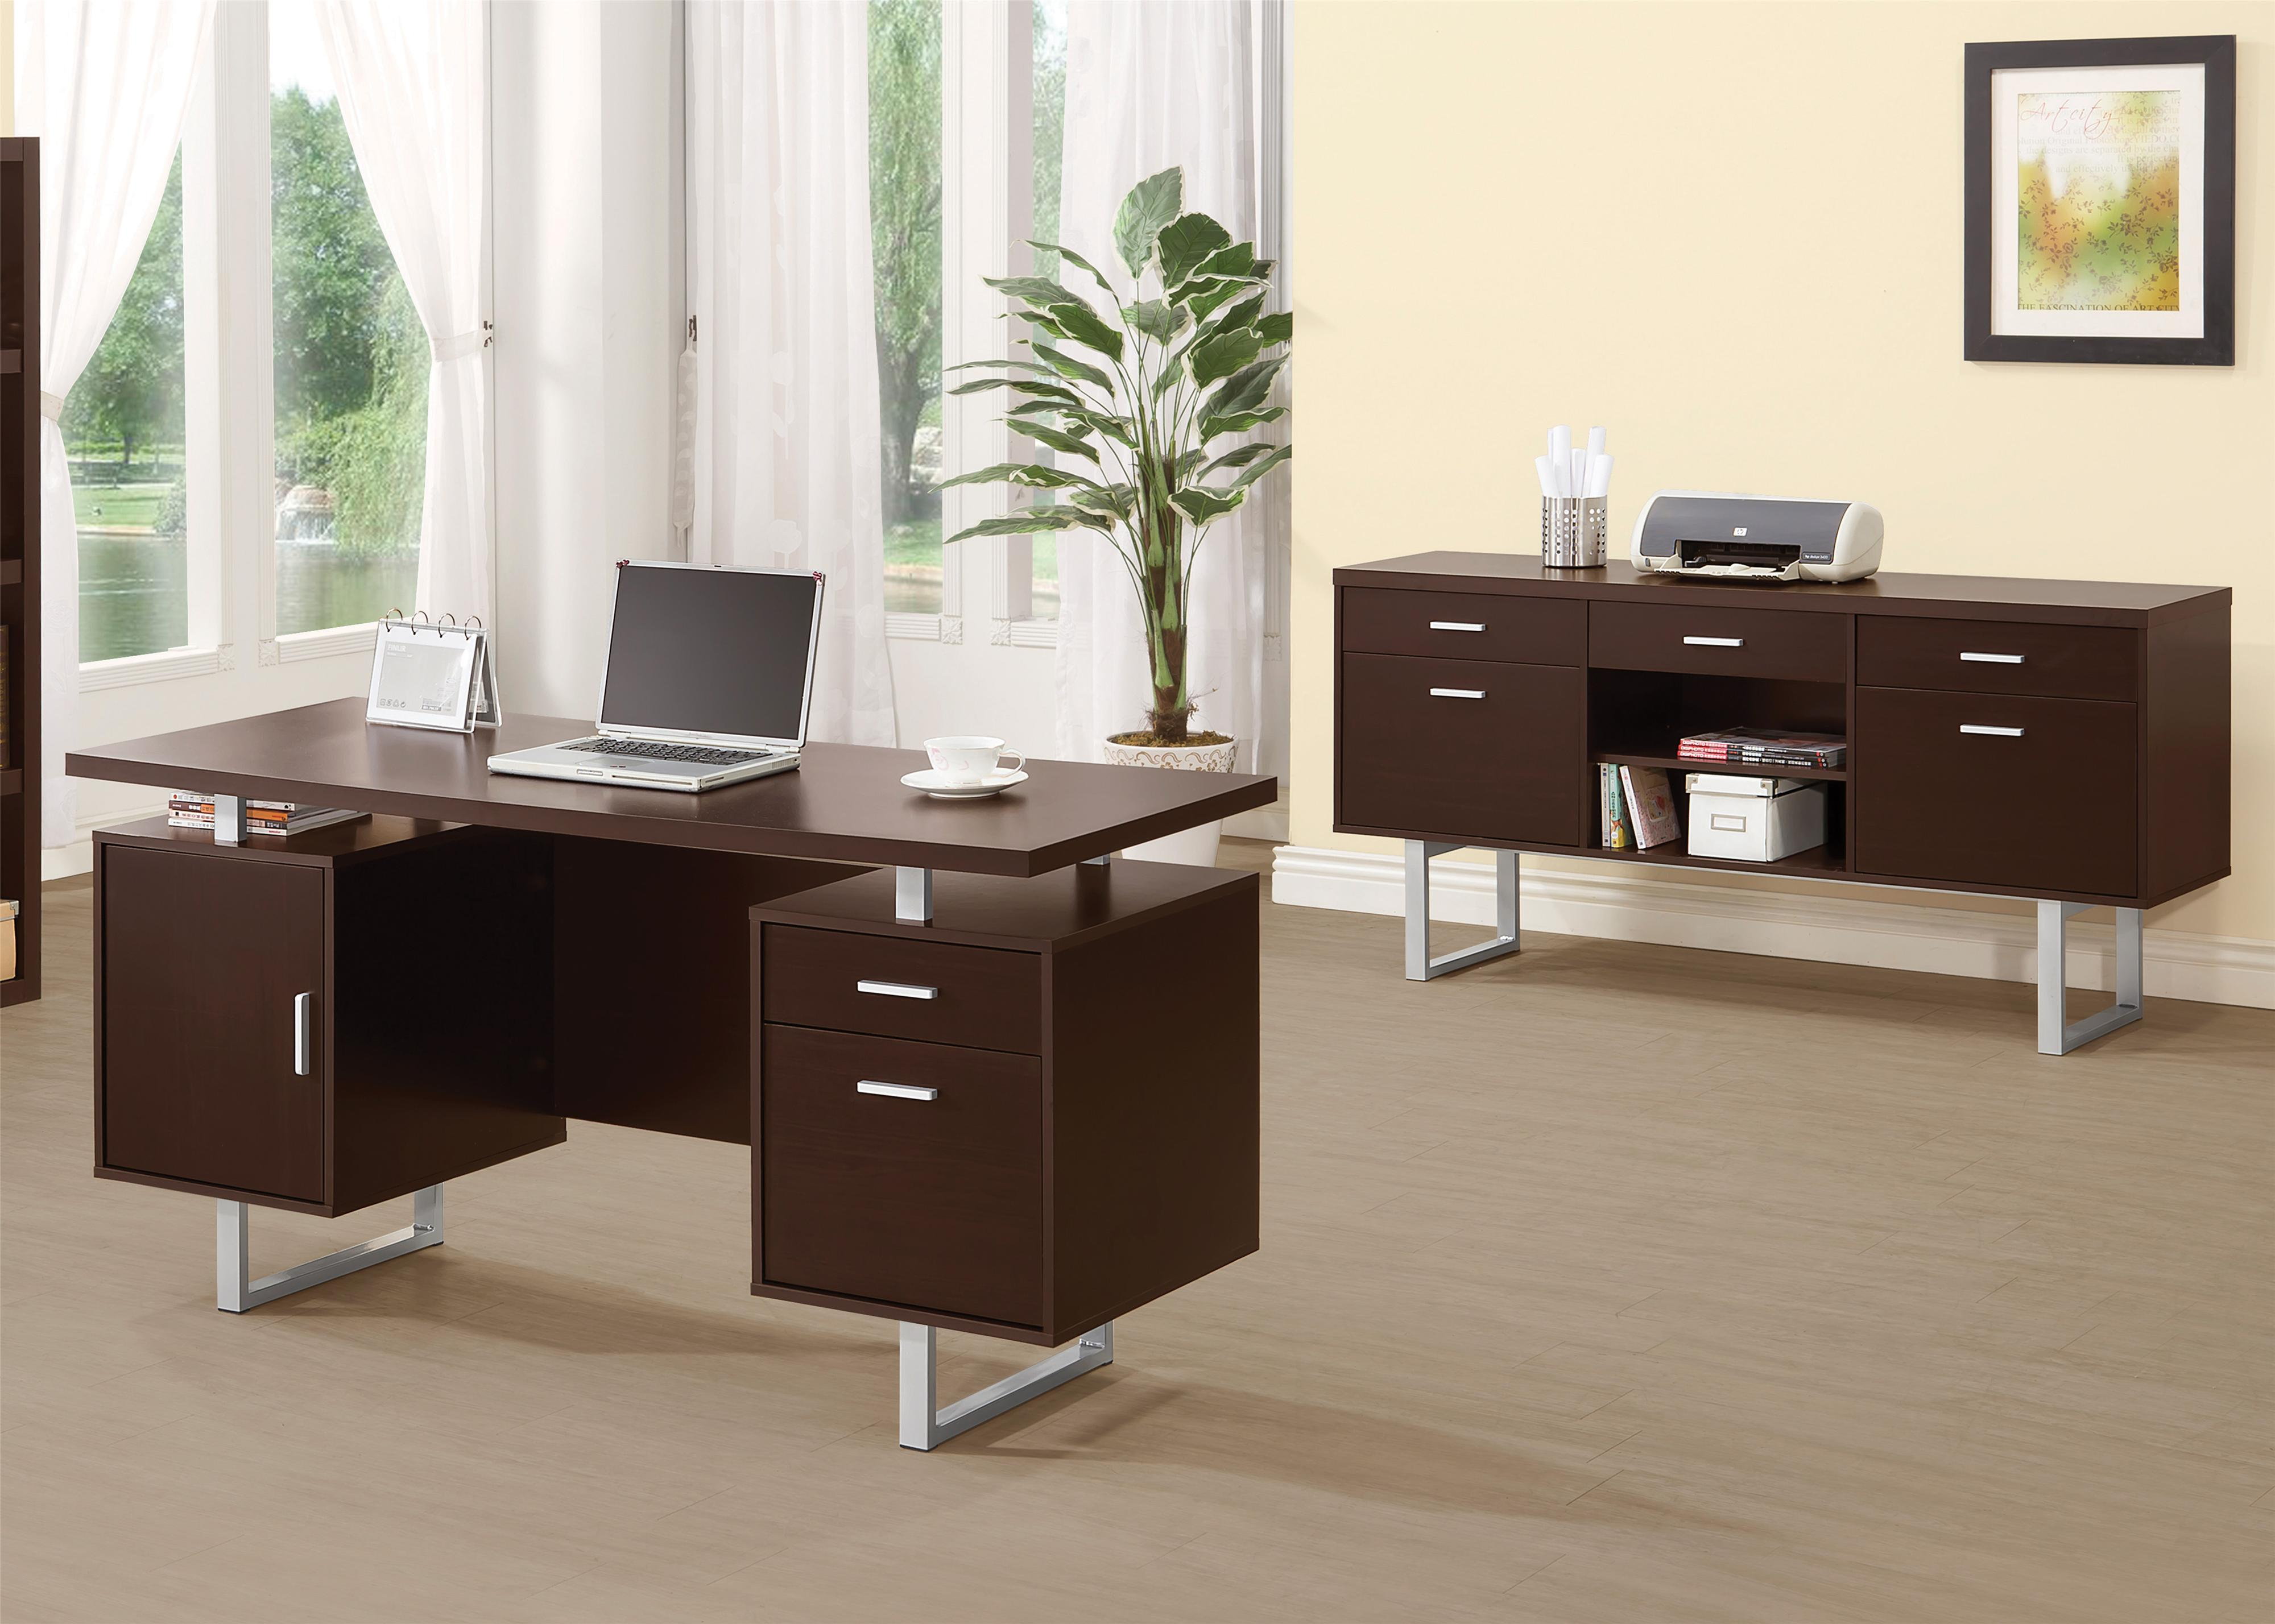 Coaster Glavan Contemporary Double Pedestal Office Desk